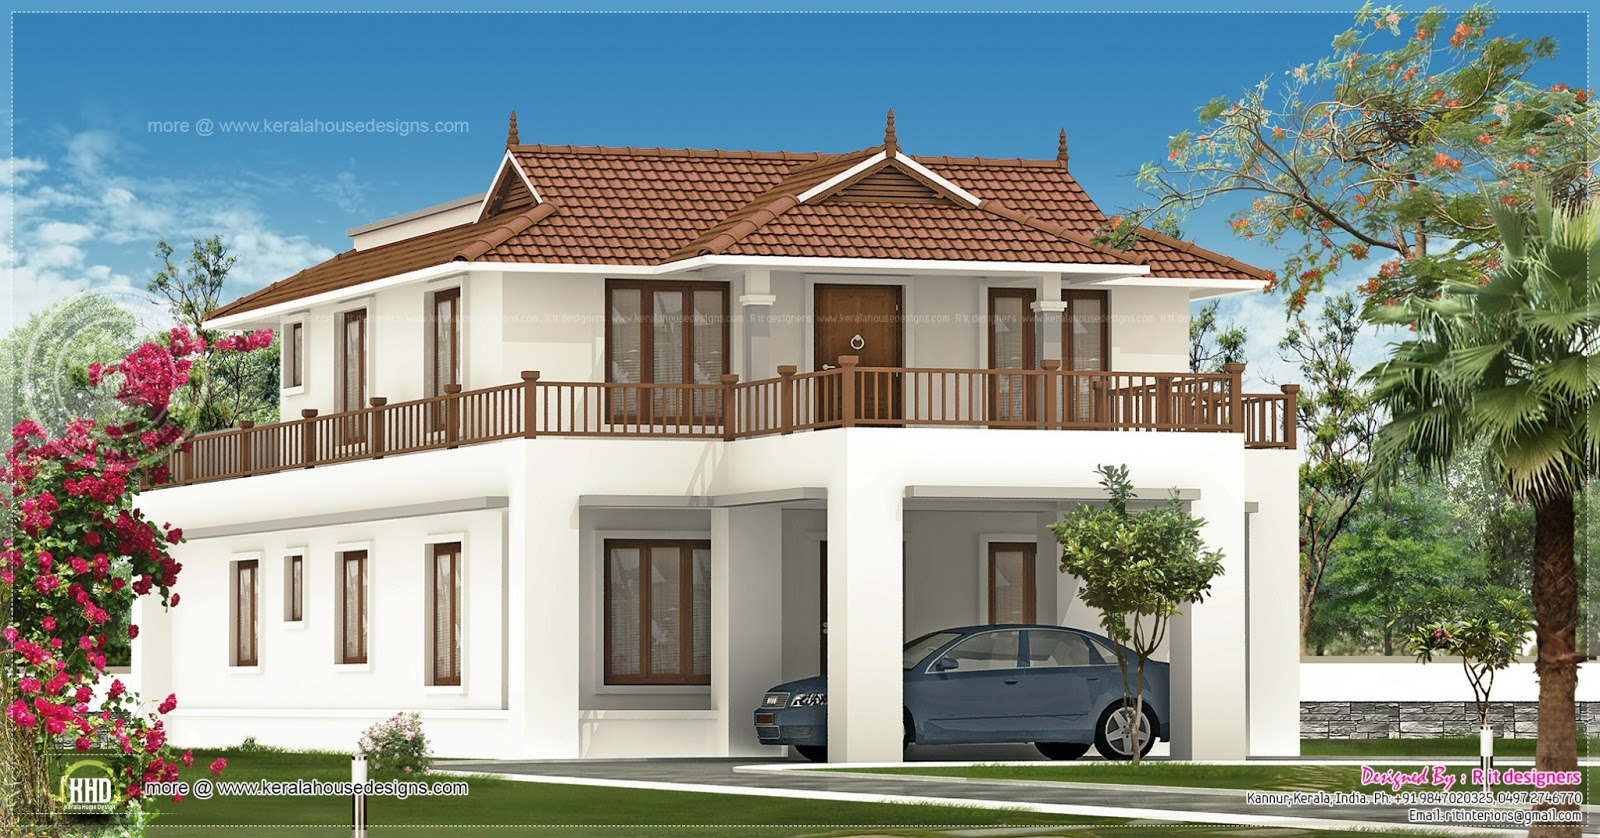 2820 square feet house exterior design home kerala plans for Home exterior designs